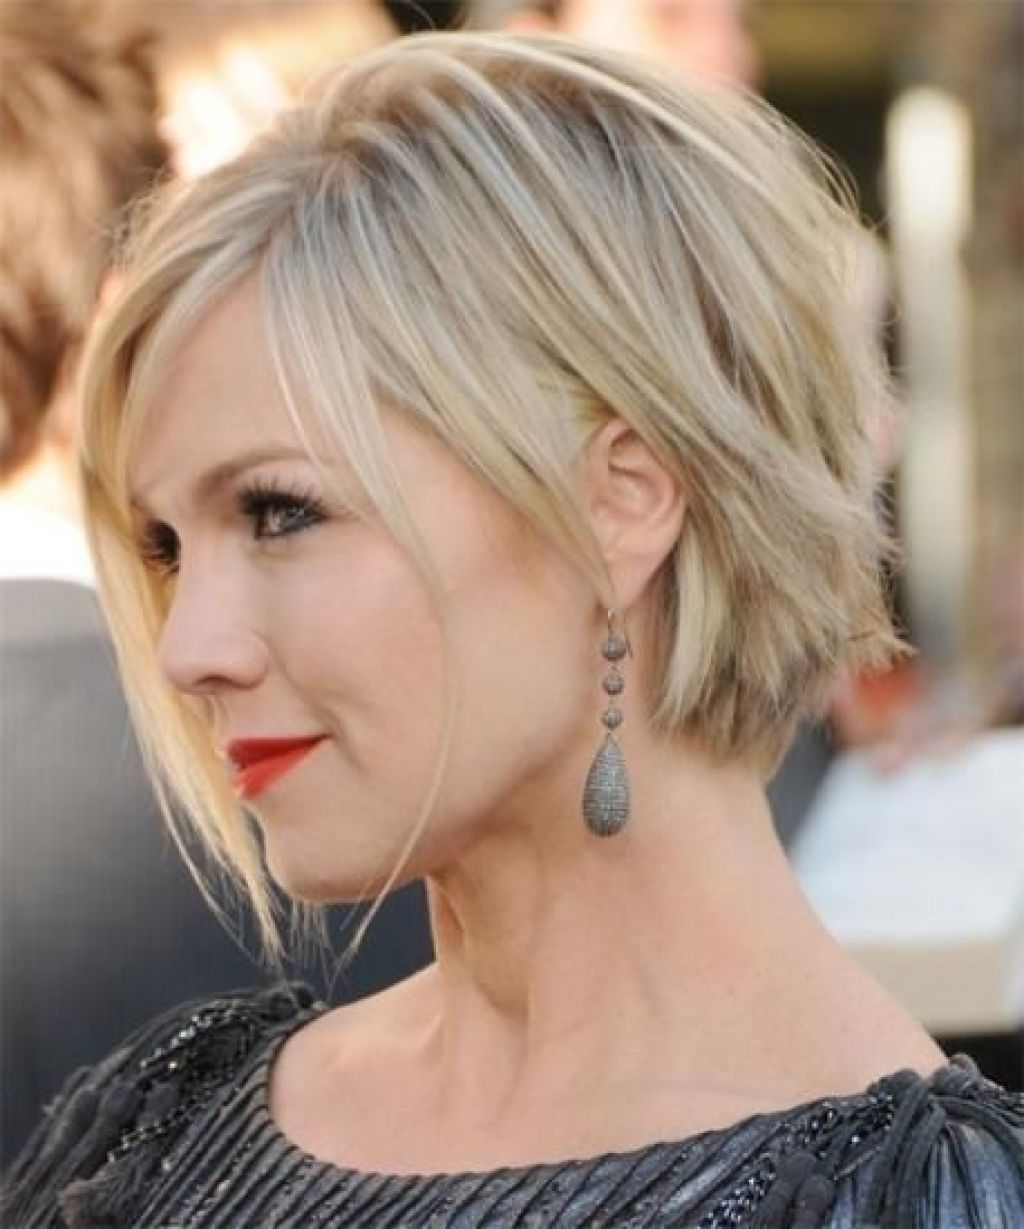 Hair Cuts : Marvelous Short Hairstyles For Round Faces Within Pixie Hairstyles For Round Faces (View 13 of 20)